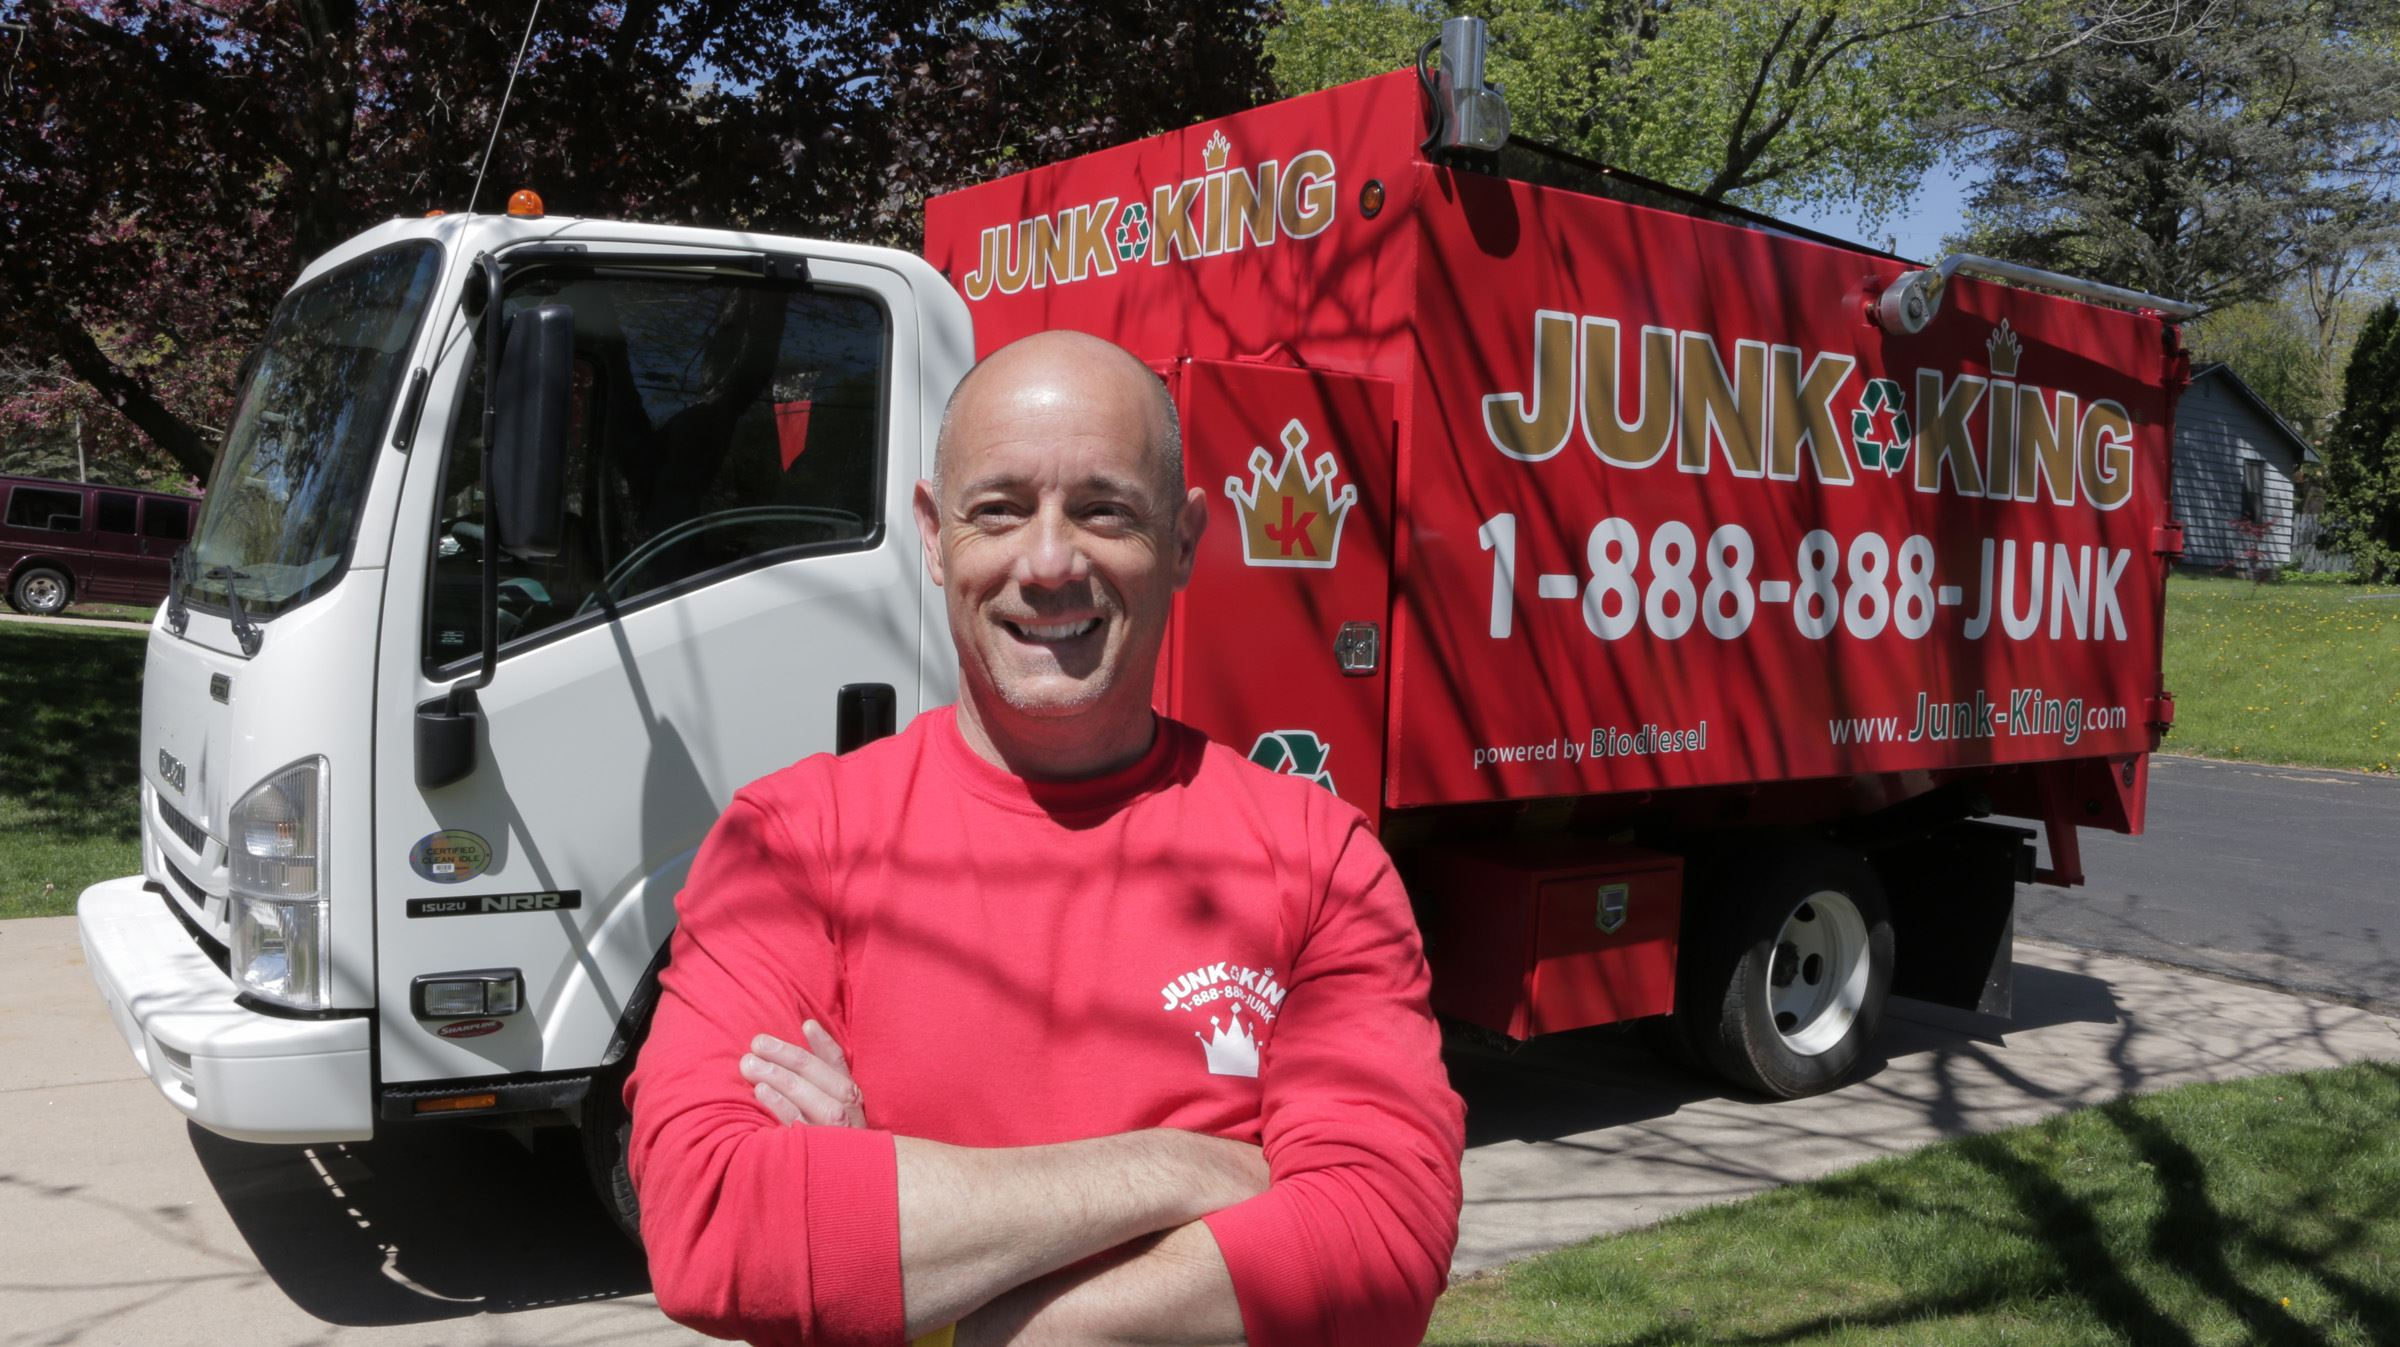 Madison Area Junk King Franchise Owner, Eric and Kira Cortese.